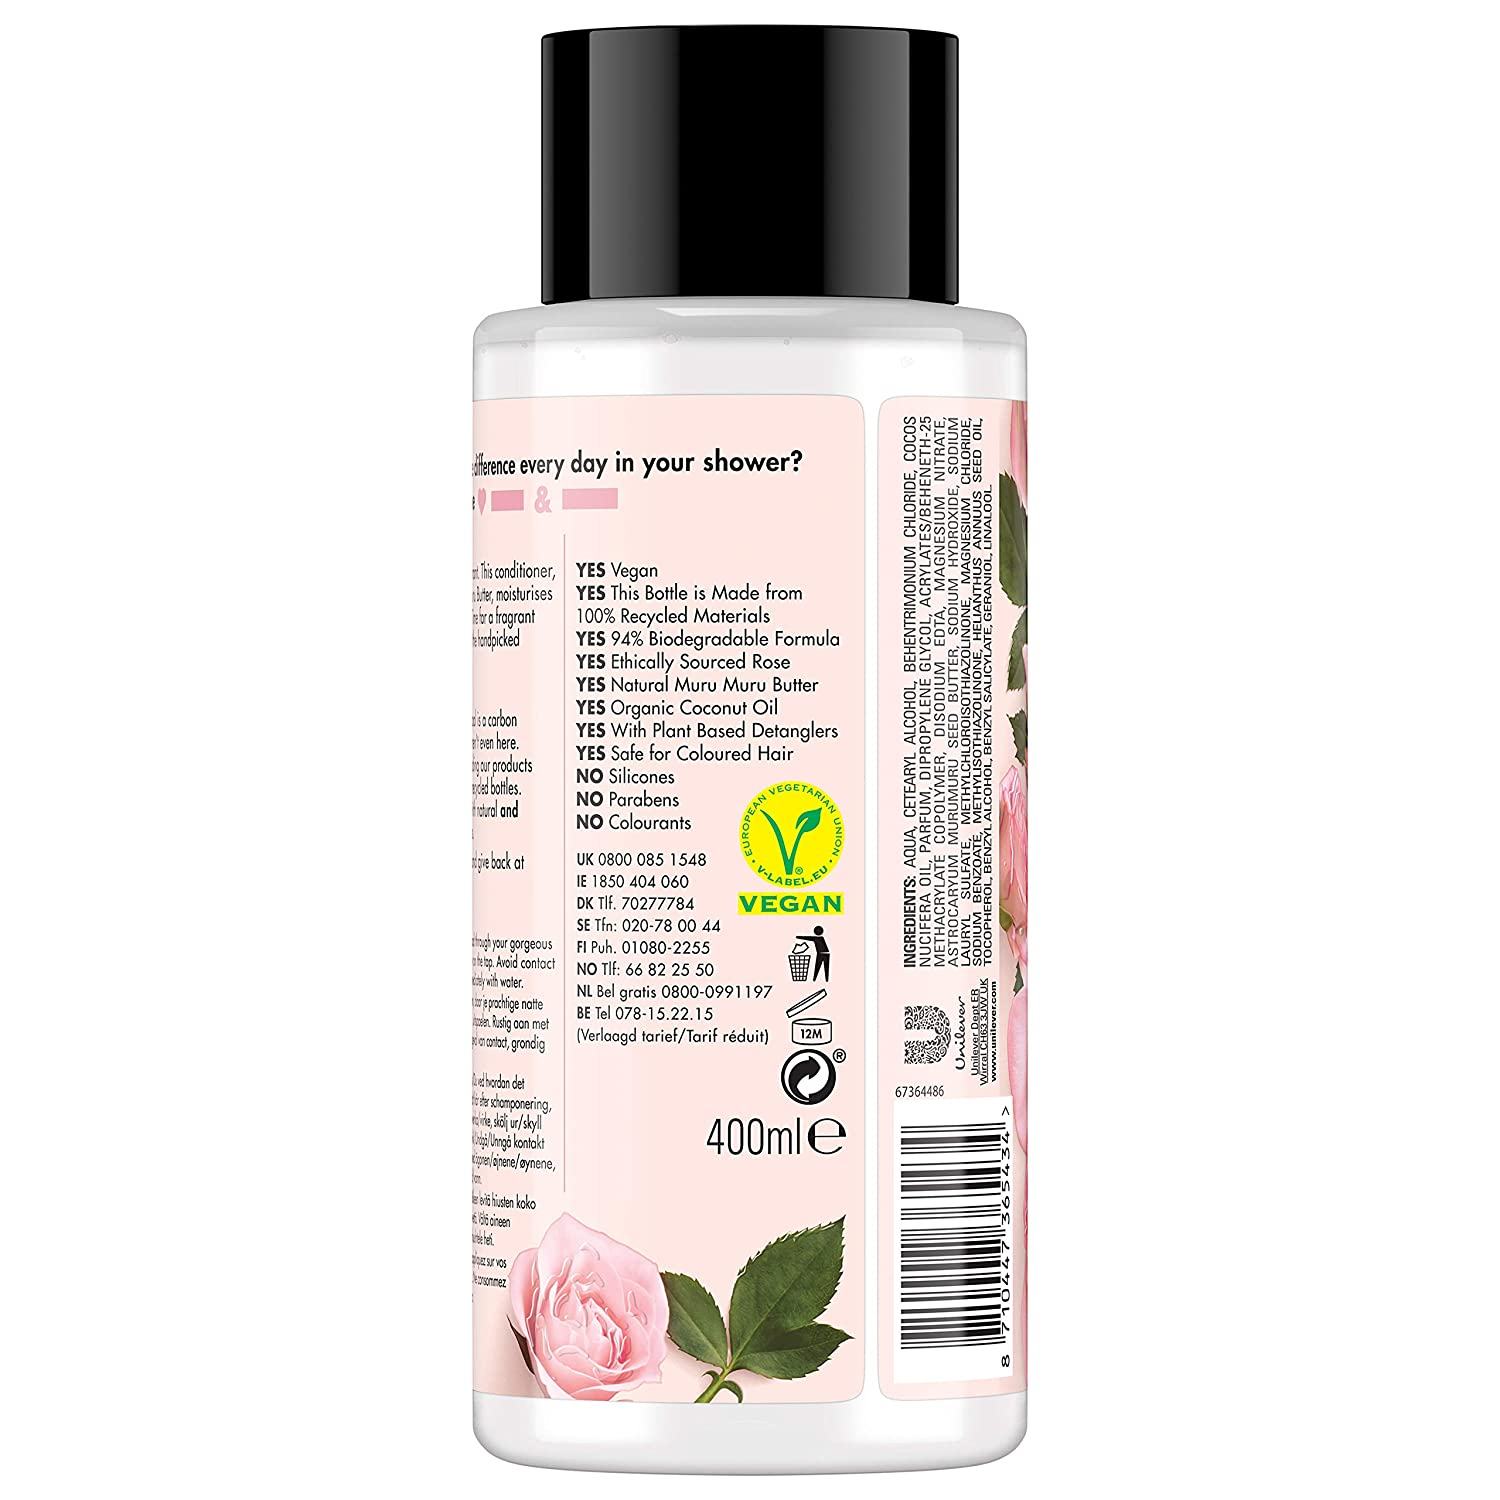 Acondicionador de cabello Love Beauty and Planet, 400 ml: Amazon.es: Salud y cuidado personal